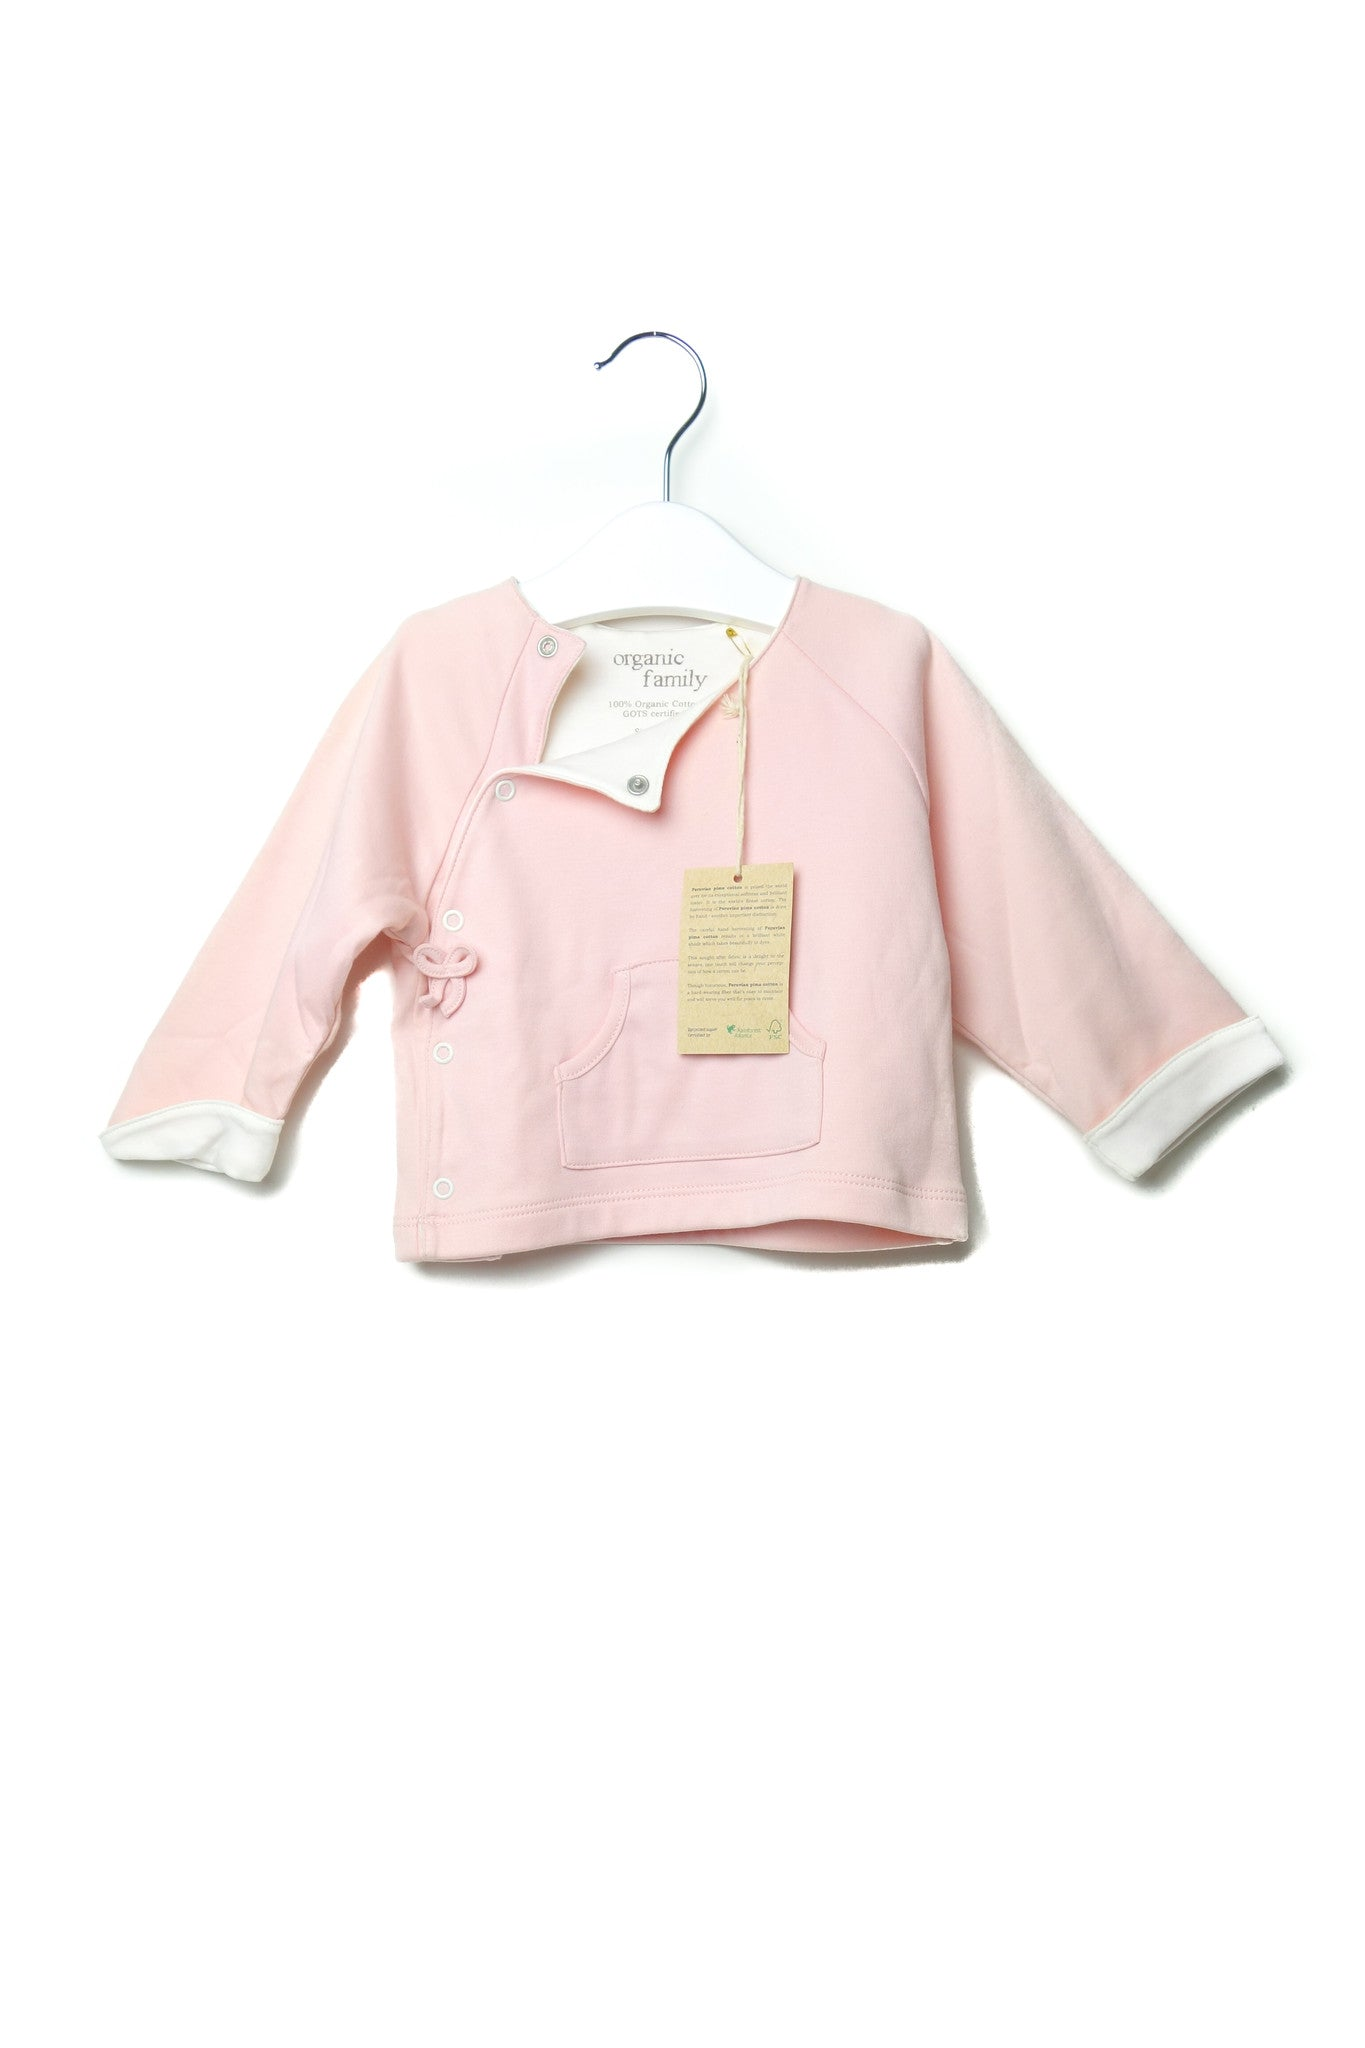 10001651 Organic Family Baby~Sweatshirt 9-12M at Retykle